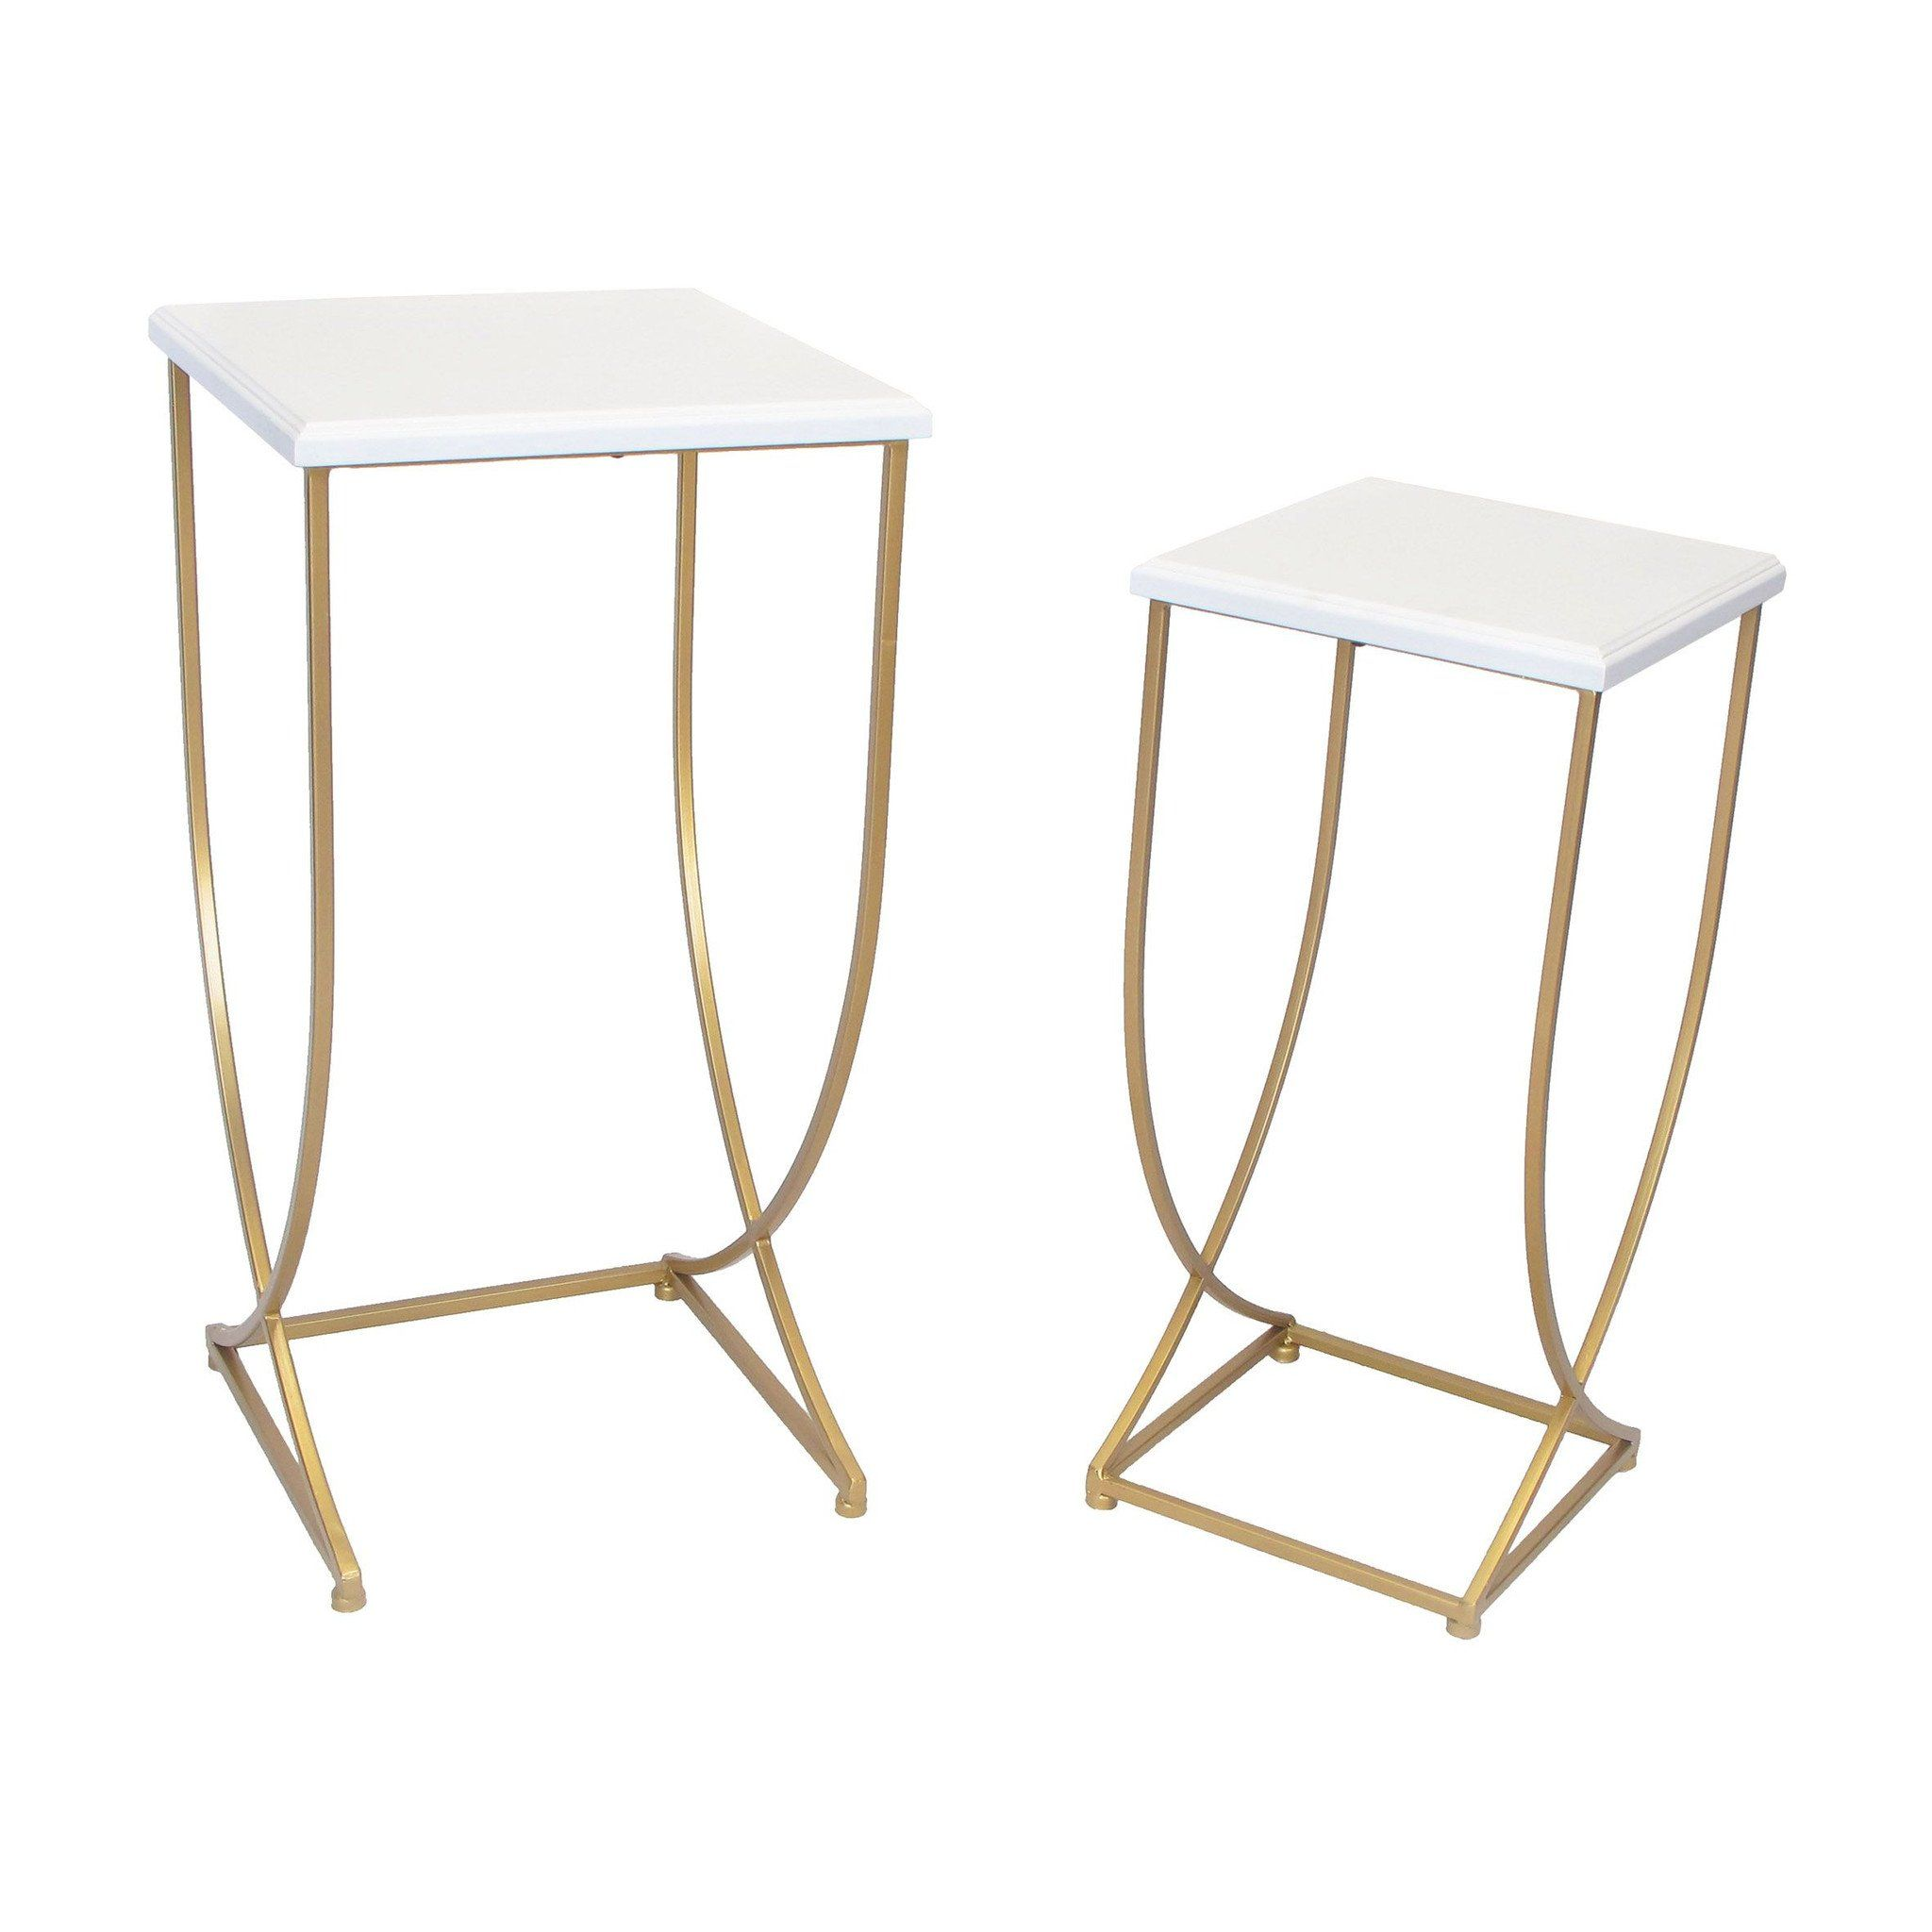 gold metal tall nesting side table set with white top everything room essentials accent ethan allen console lobby chairs christmas linen tablecloths small nautical bathroom vanity